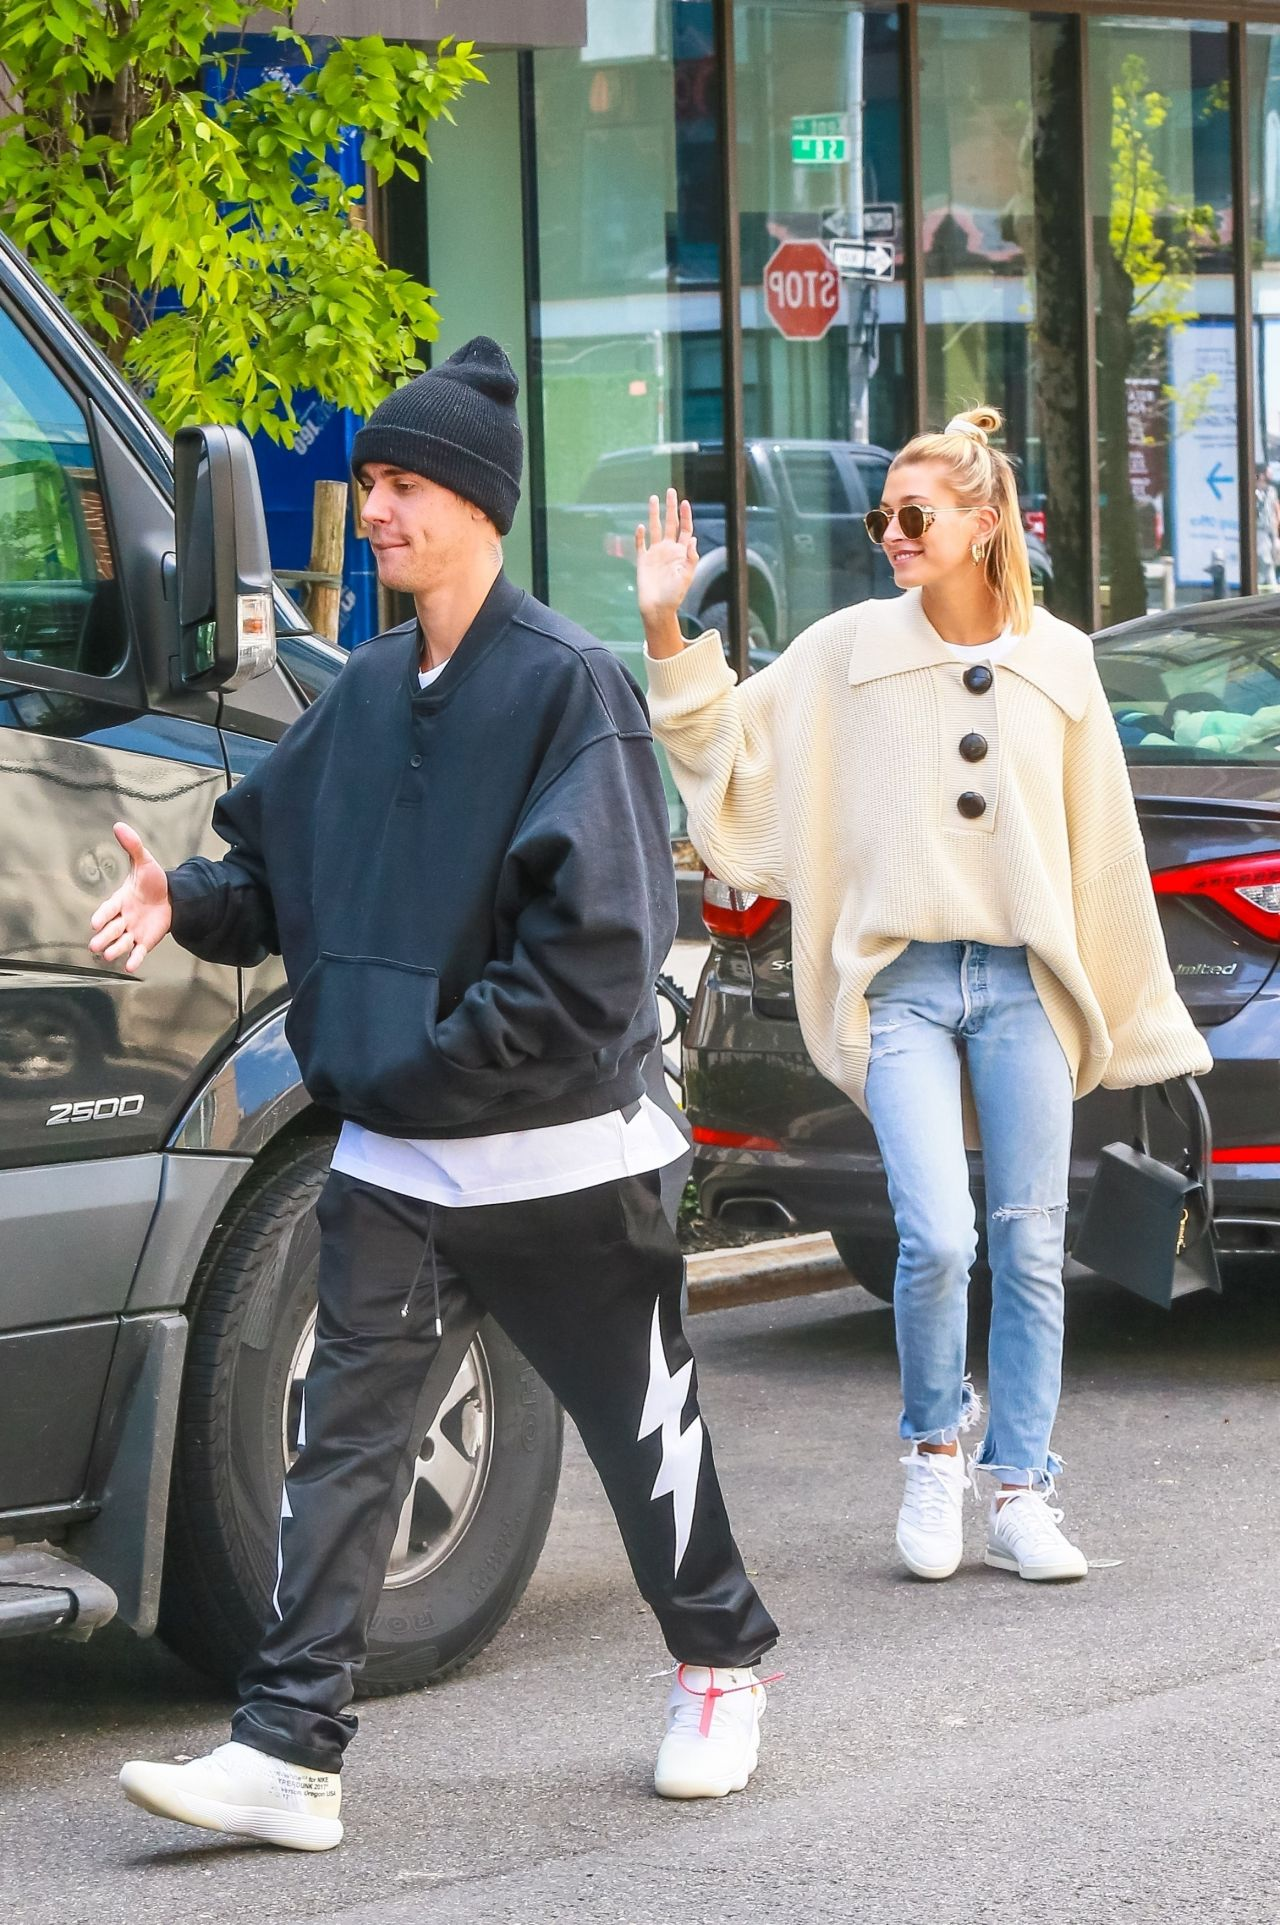 Hailey Rhode Bieber And Justin Bieber Out In Nyc 05 08 2019